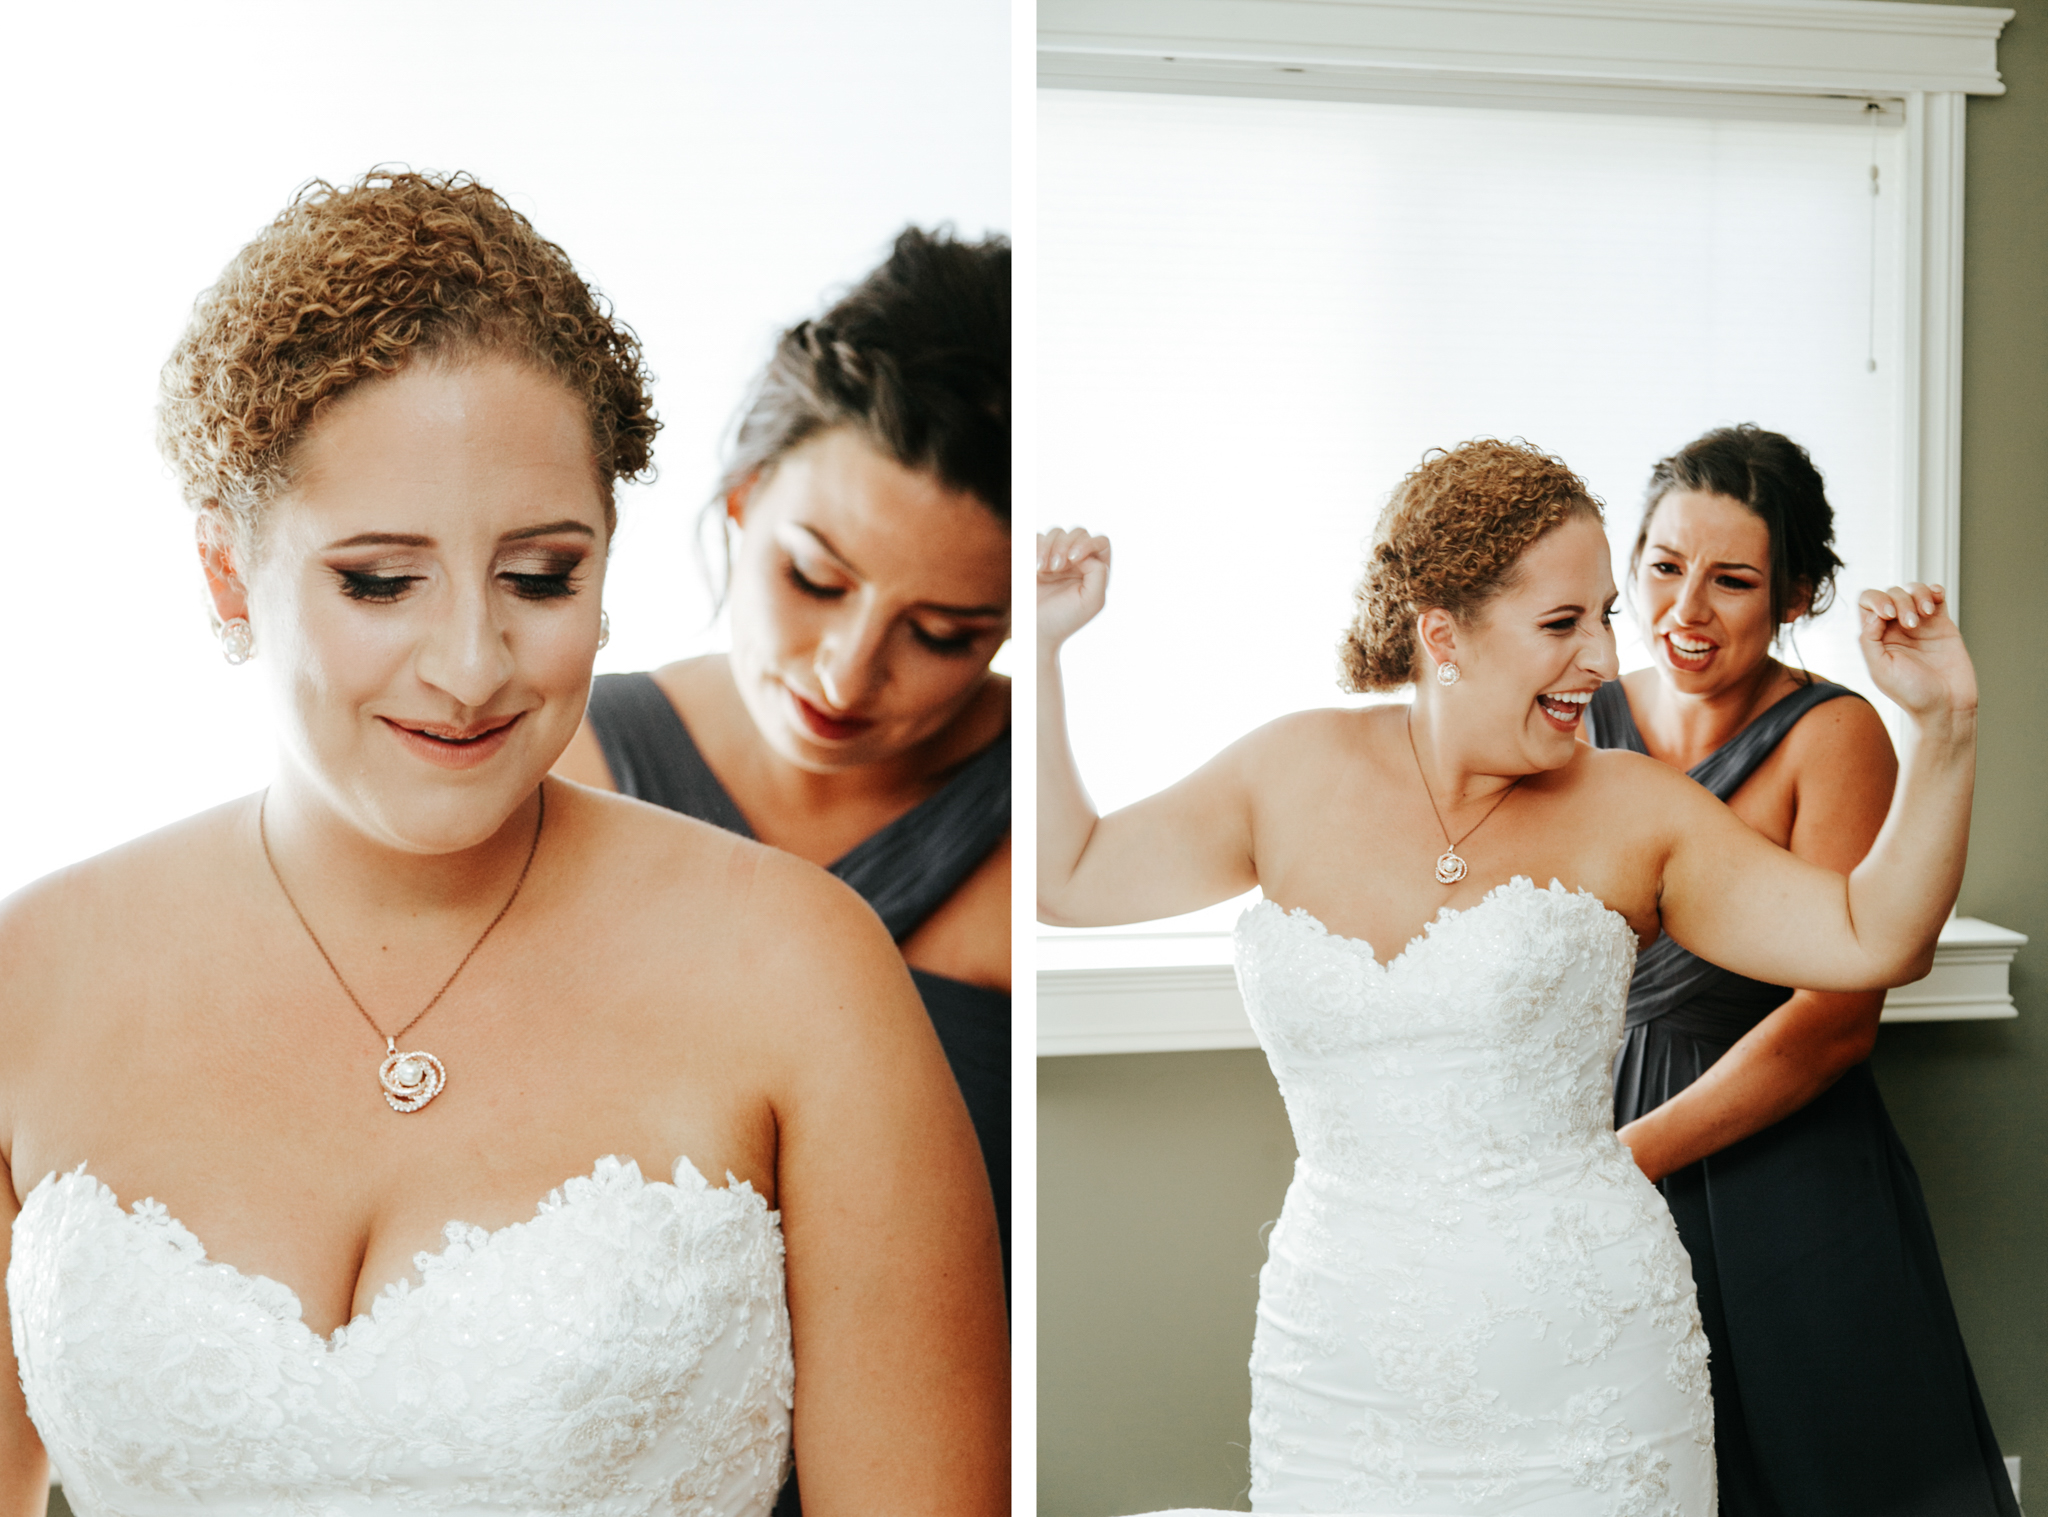 lethbridge-wedding-photographer-love-and-be-loved-photography-trent-danielle-galt-reception-picture-image-photo-73.jpg